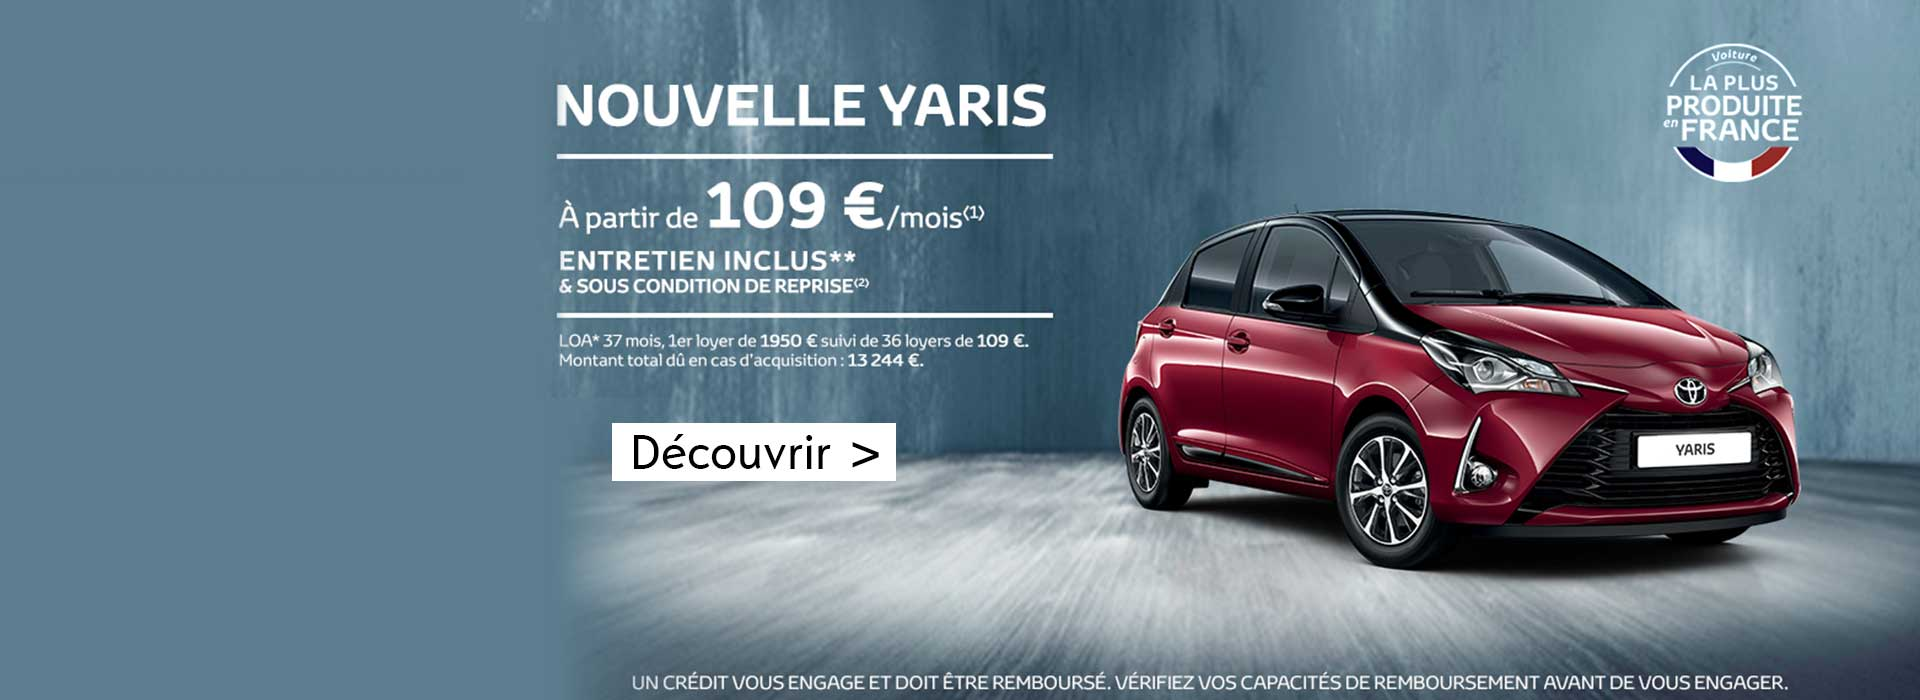 toyota thionville vente voiture neuve vehicule occasion. Black Bedroom Furniture Sets. Home Design Ideas